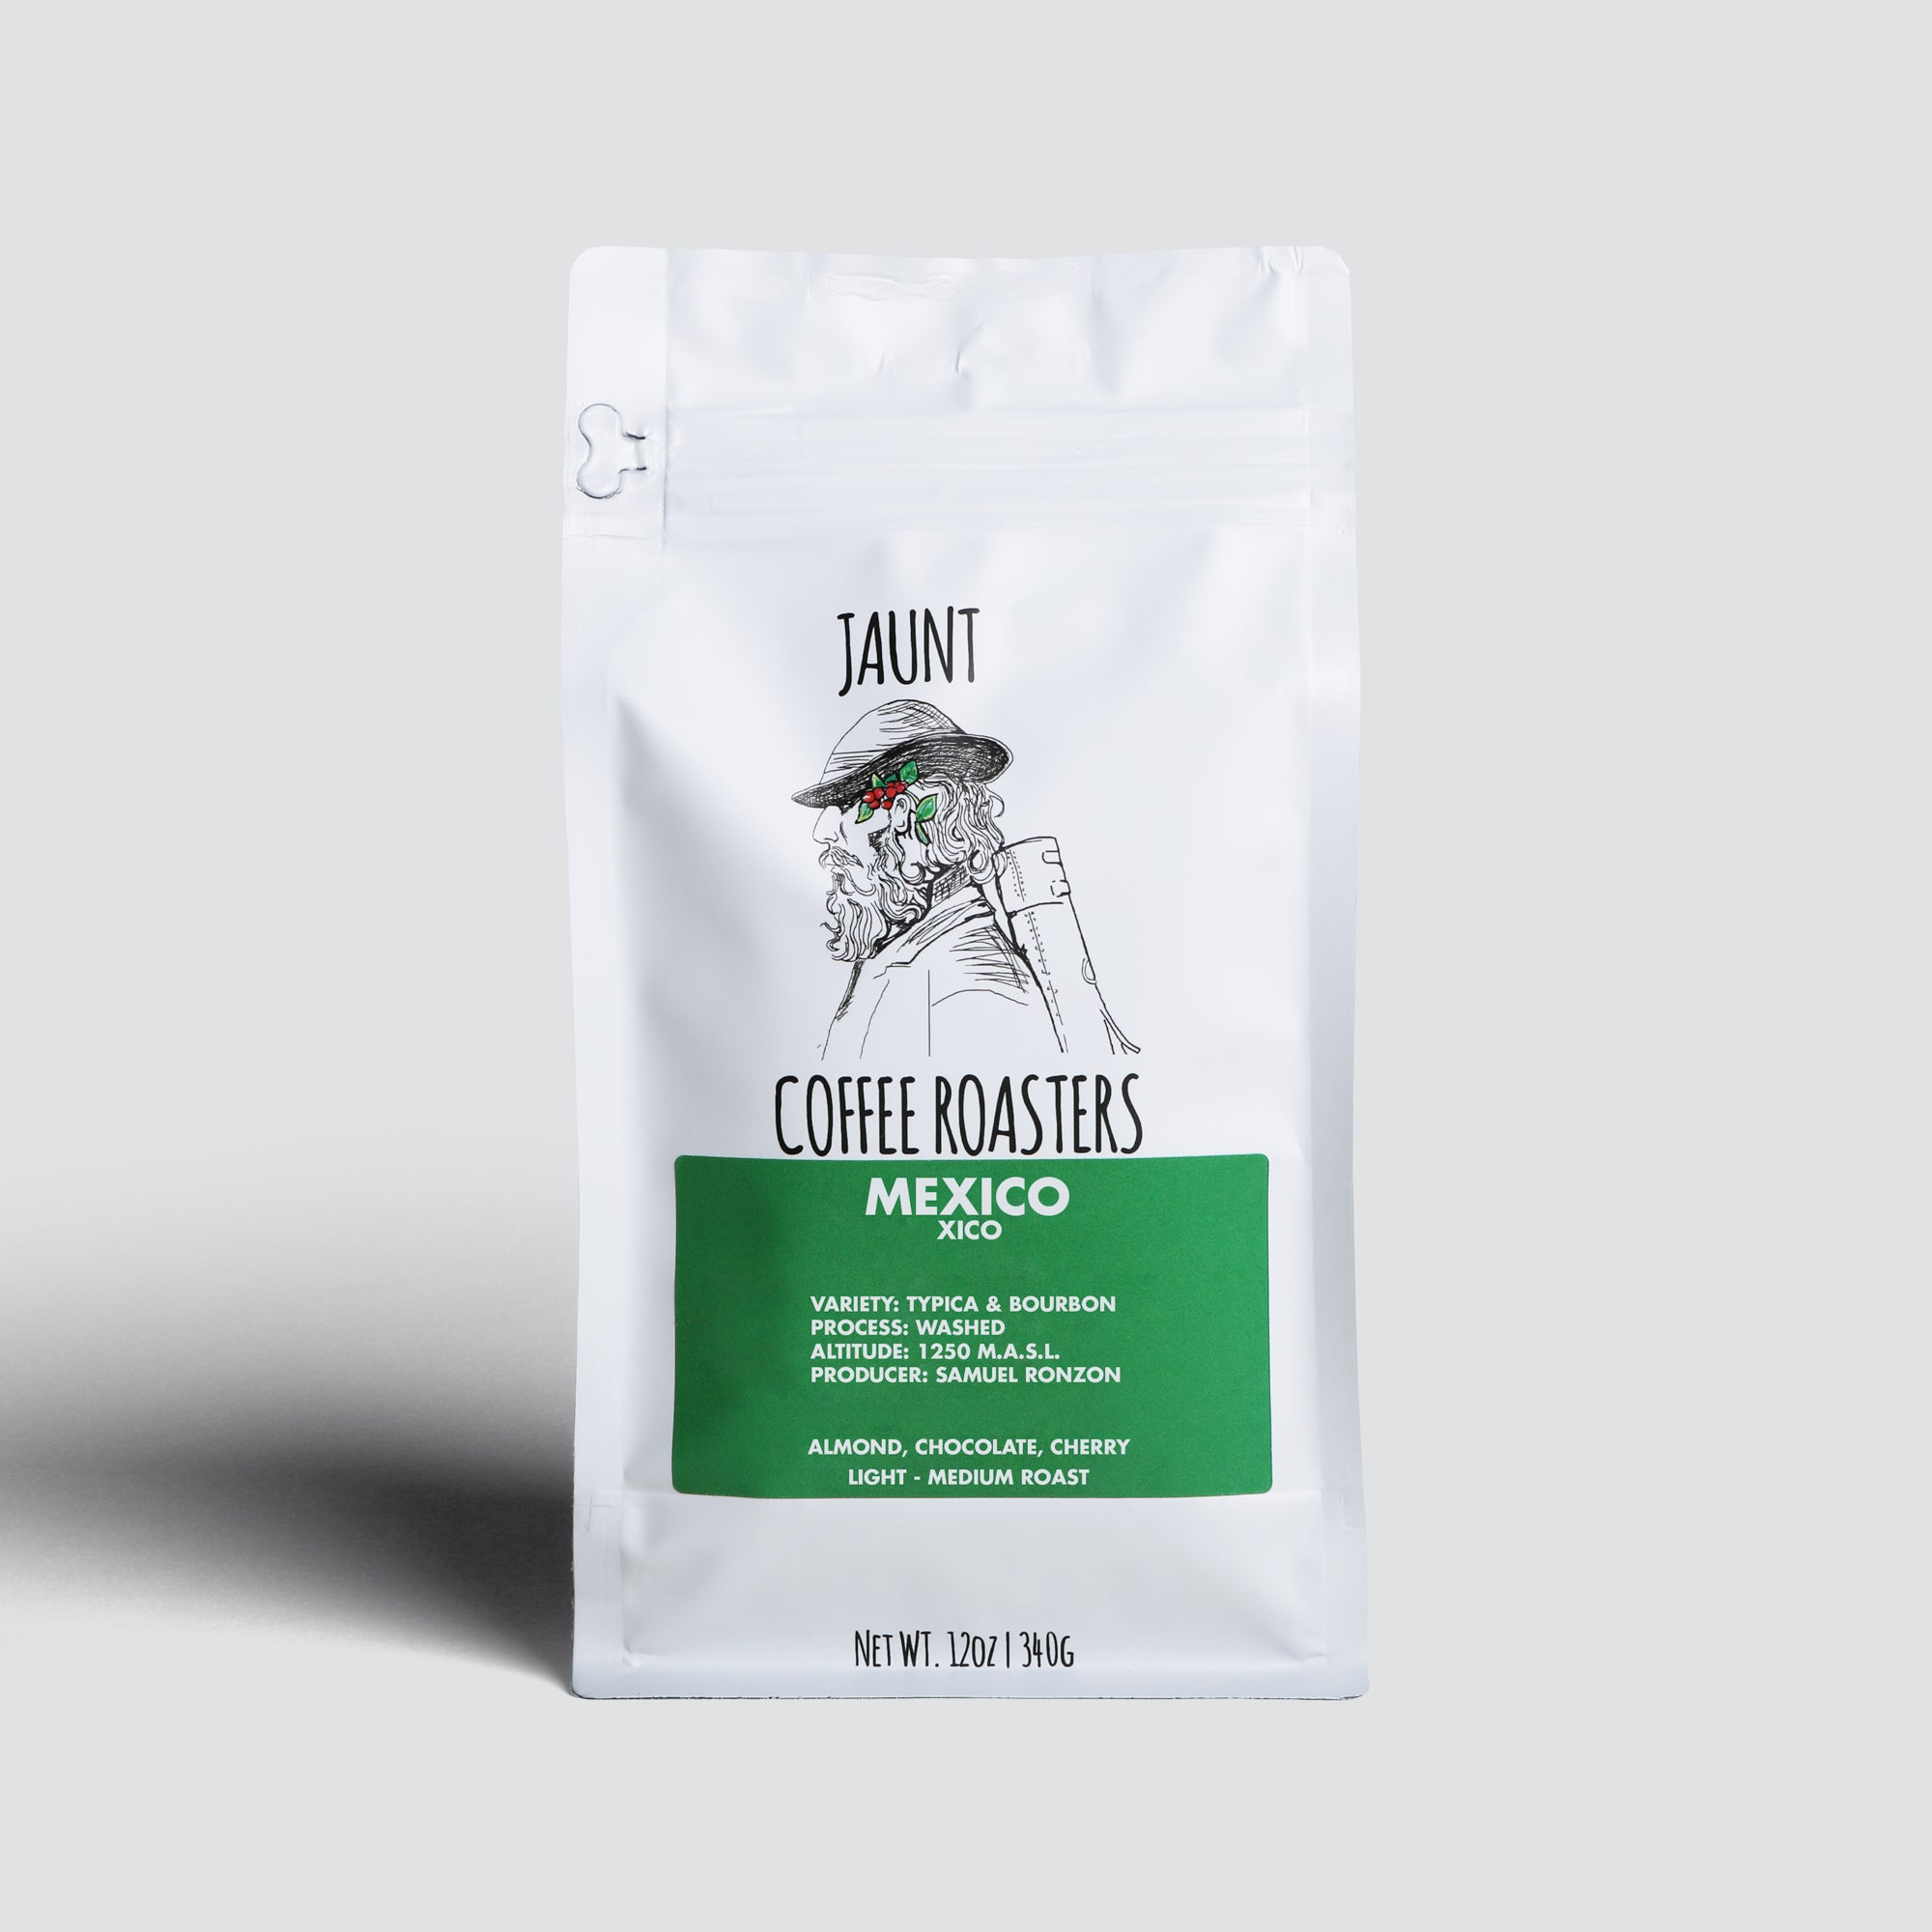 Mexico - Xico Trilogy Set - Light/Medium Roast - Jaunt Coffee Roasters